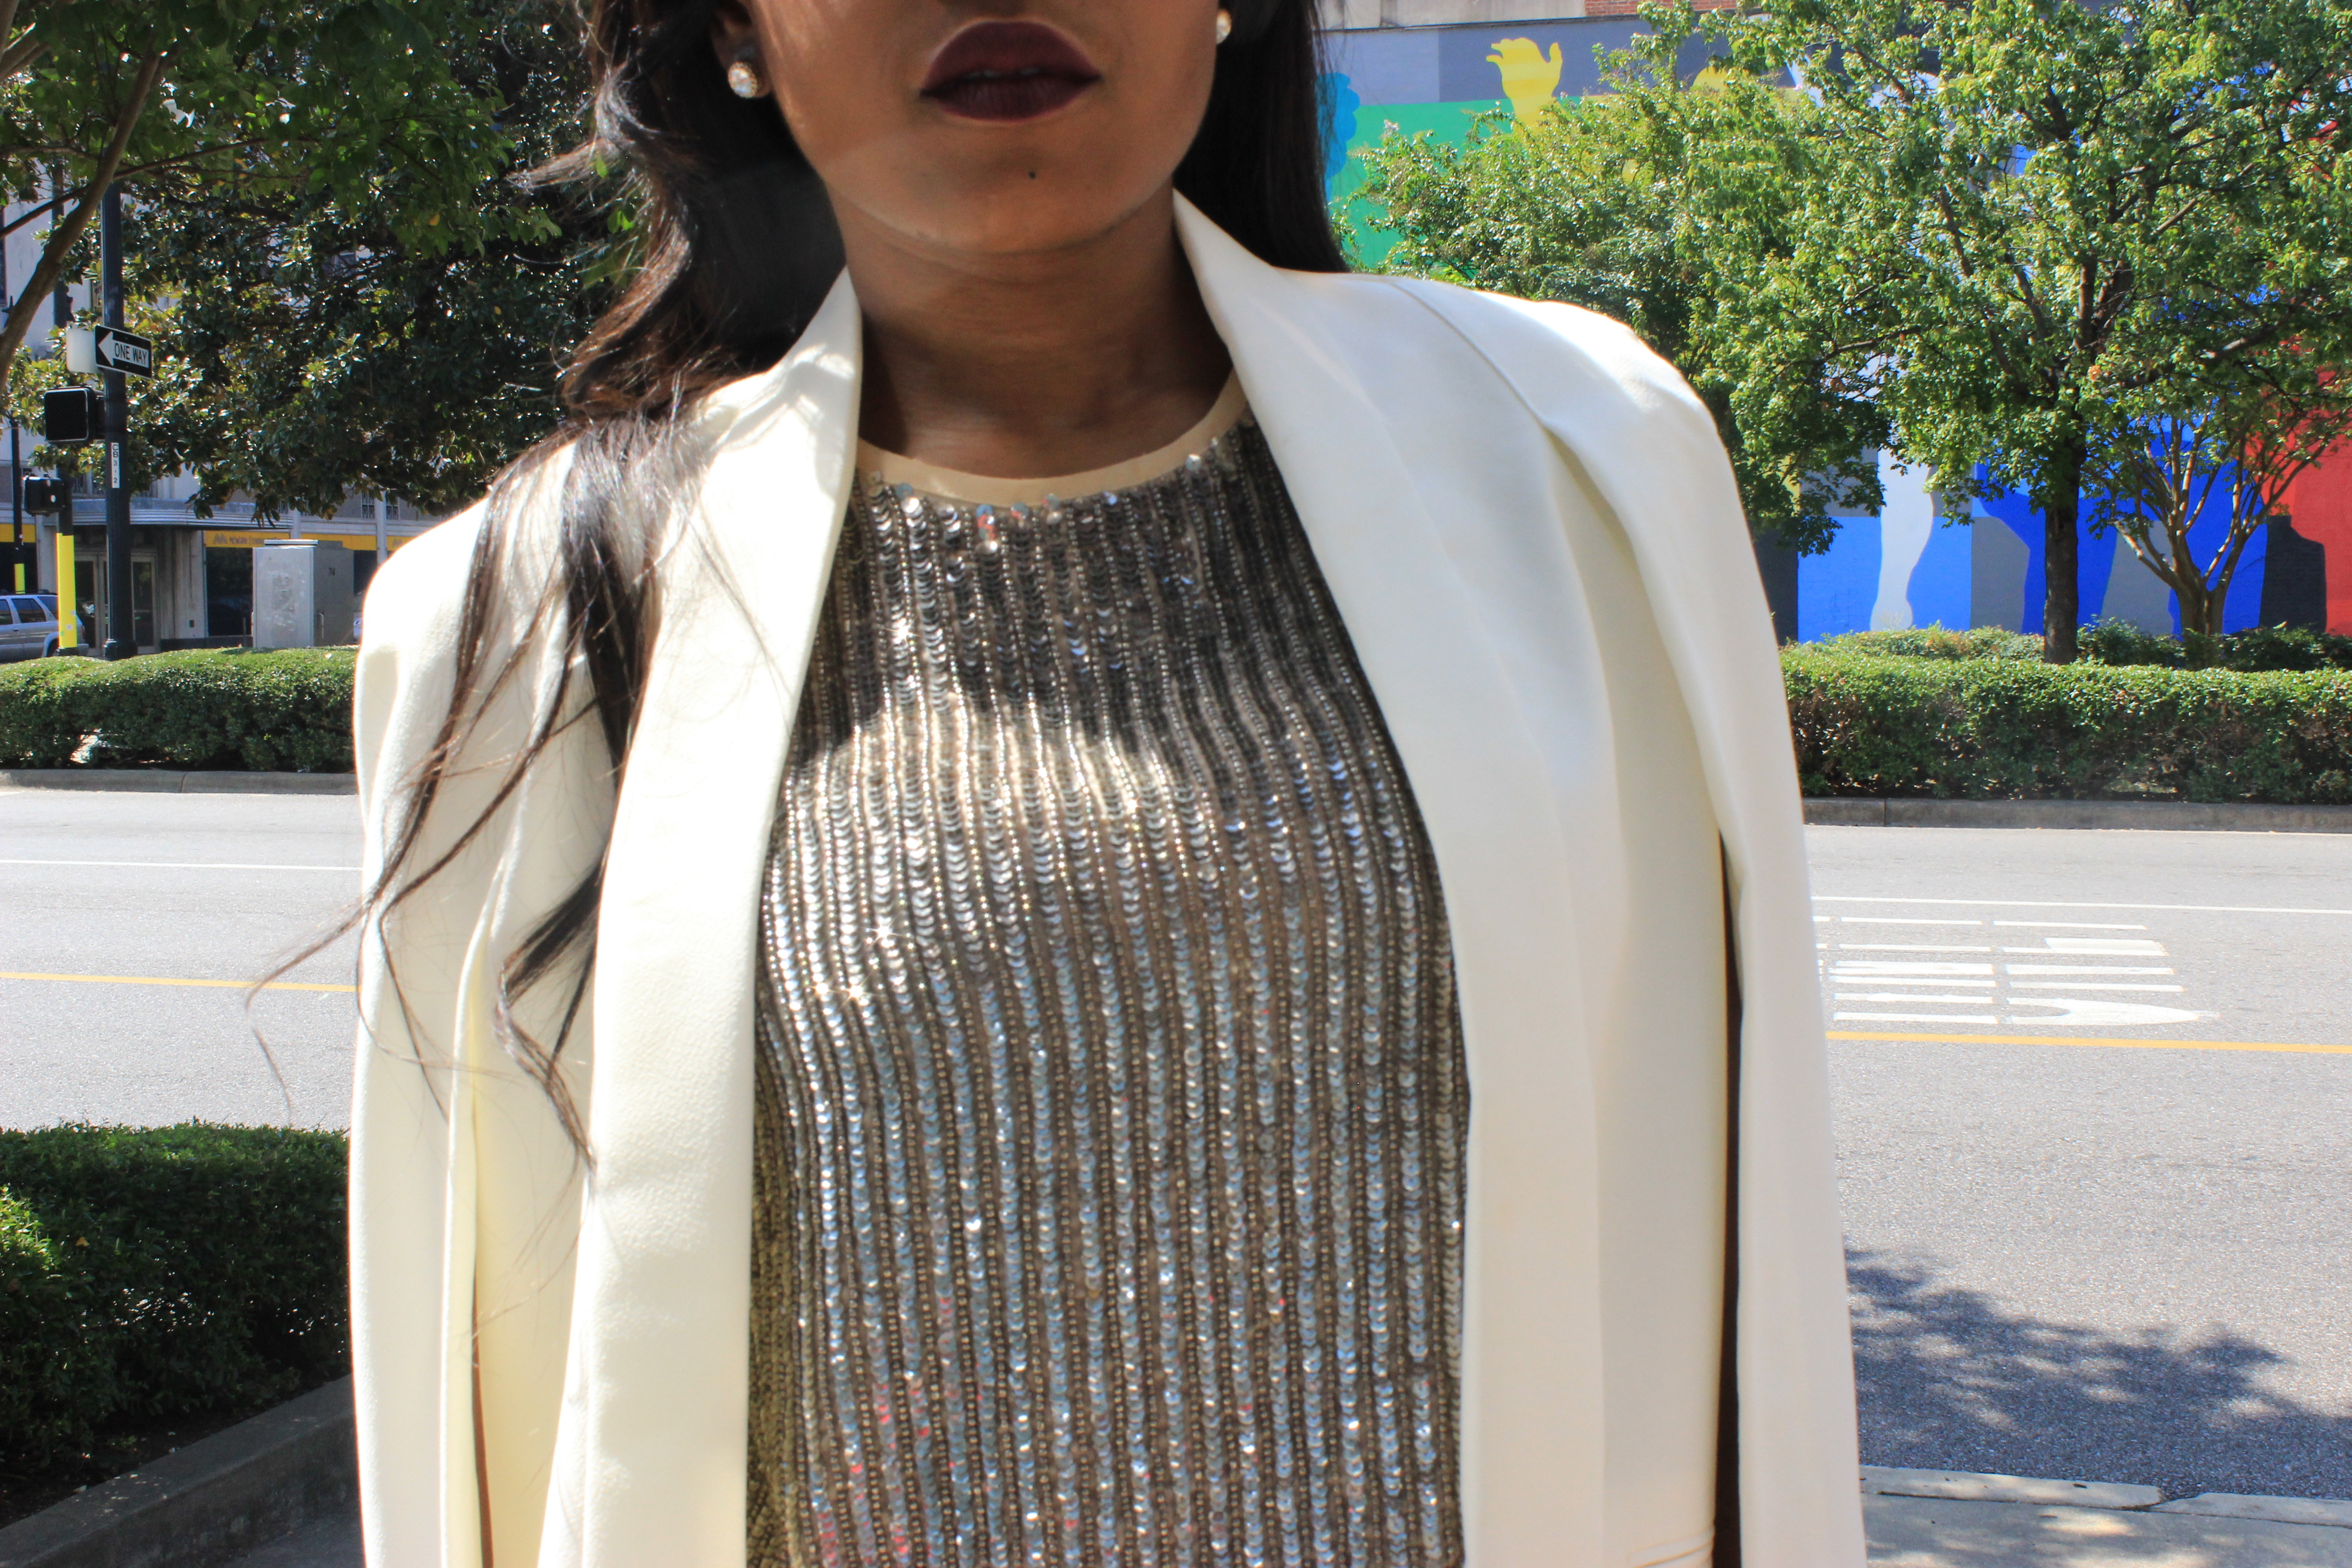 Style-Files-Transitioning from-summer-to-fall-WhoWhatWear-Target-Cape-Jacket-Forever-21-Sheer-Nude-Sequin-tank-top-Target-Mossimo-Boyfriend-Jeans-On-a-evel-nasty-gal-suede-nude-sandals-WetnWild-Fall-Dont-be-a-plum-plum-matte-liquid-lipstick-9